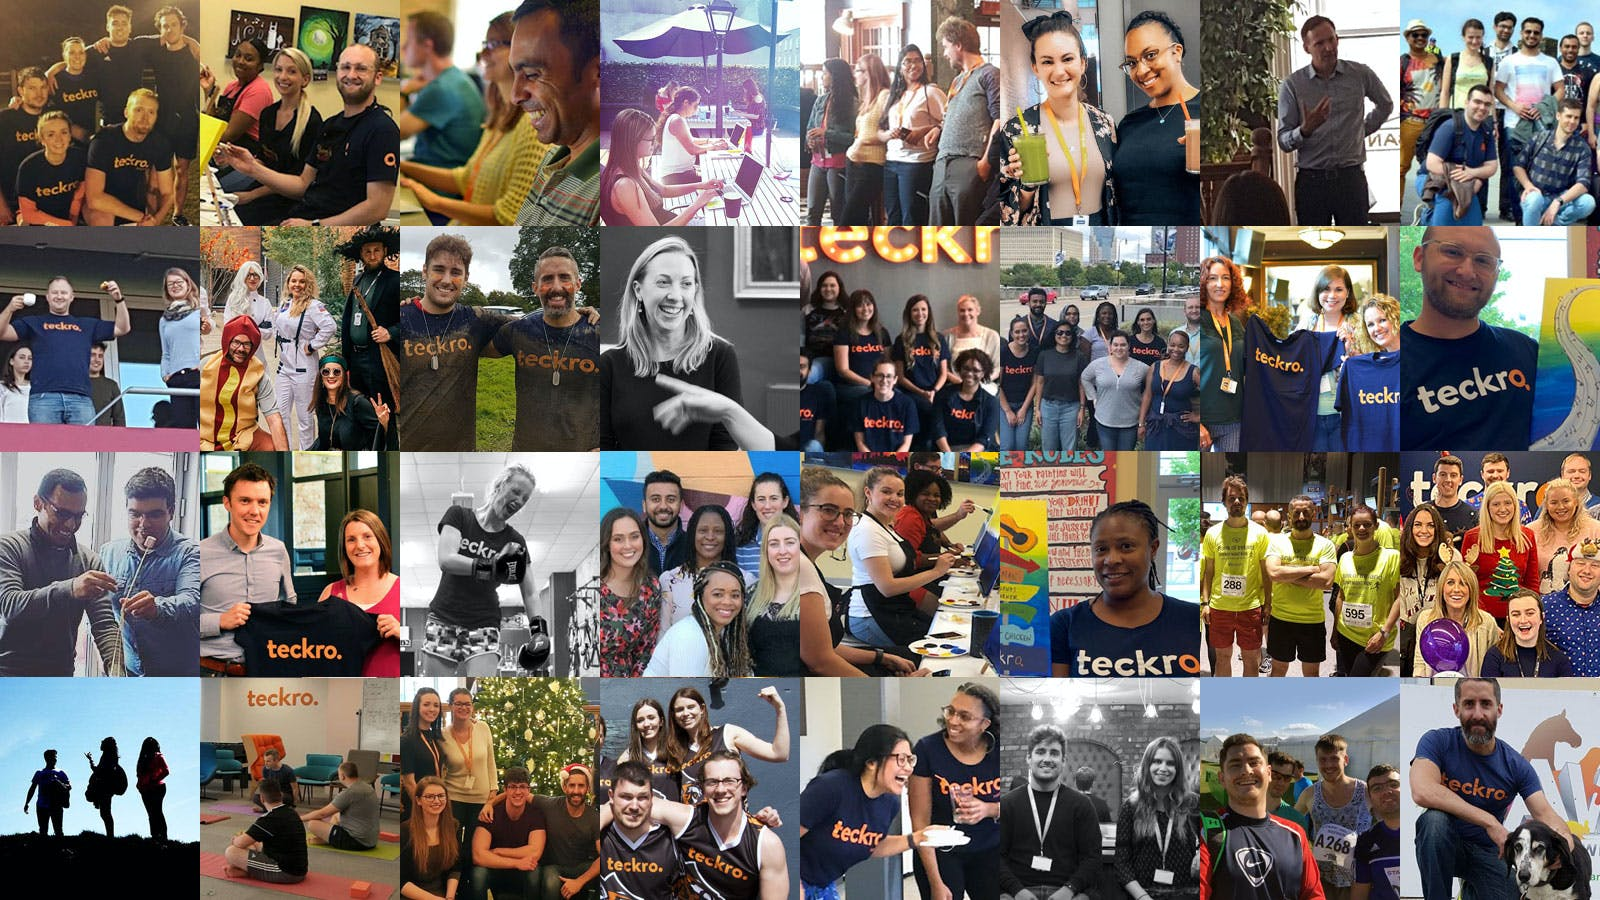 Teckro Five Year Anniversary: Celebrating Our Team